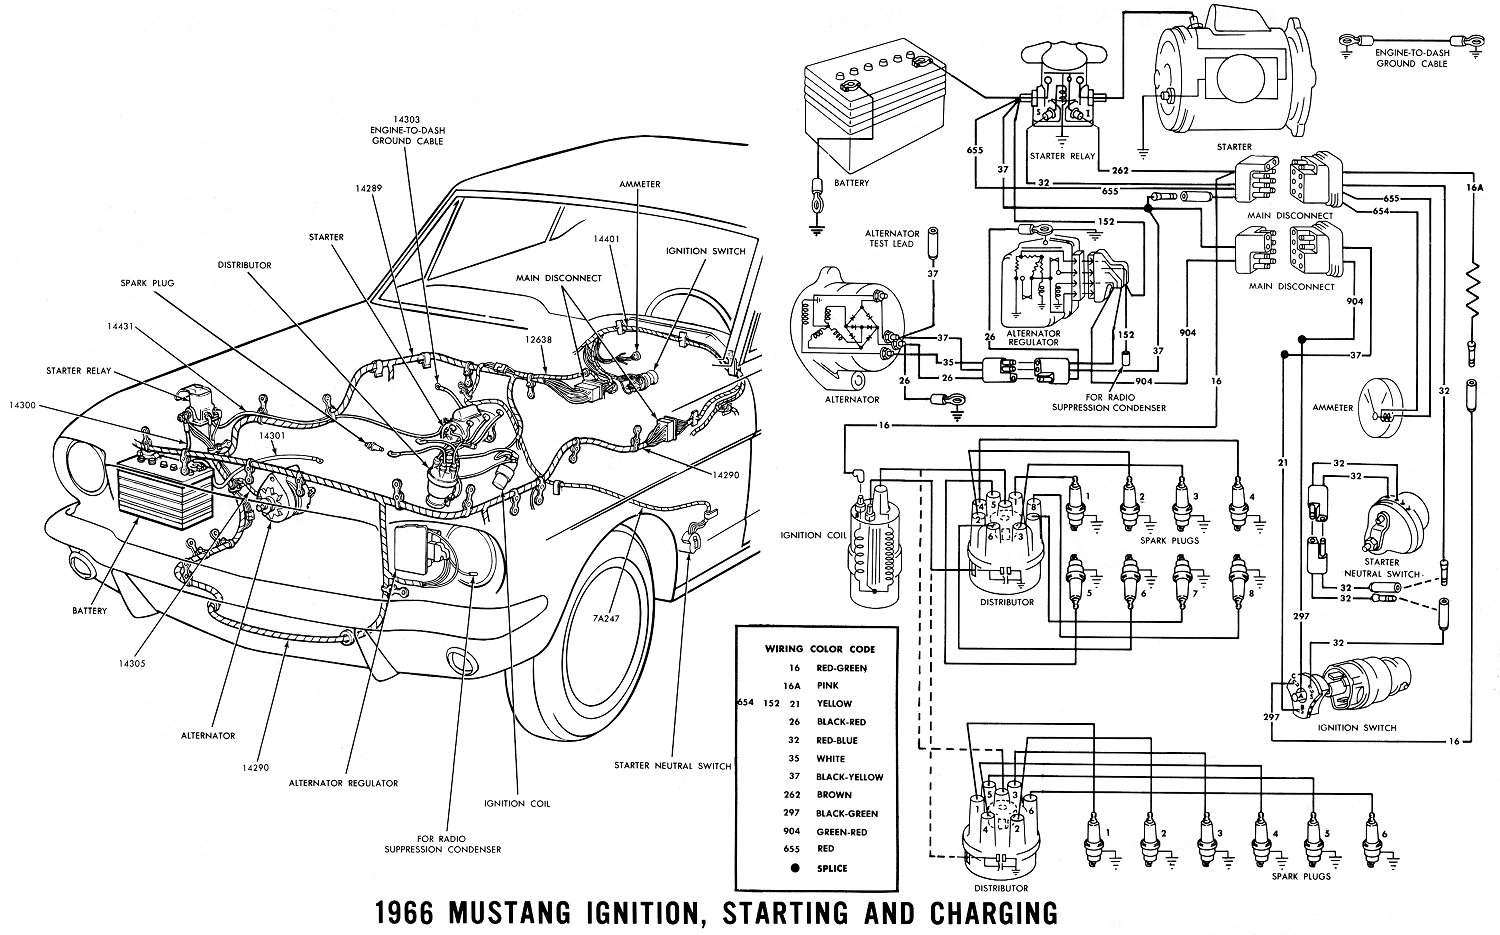 66ignit 1966 mustang wiring diagrams average joe restoration Ford E 350 Wiring Diagrams at honlapkeszites.co